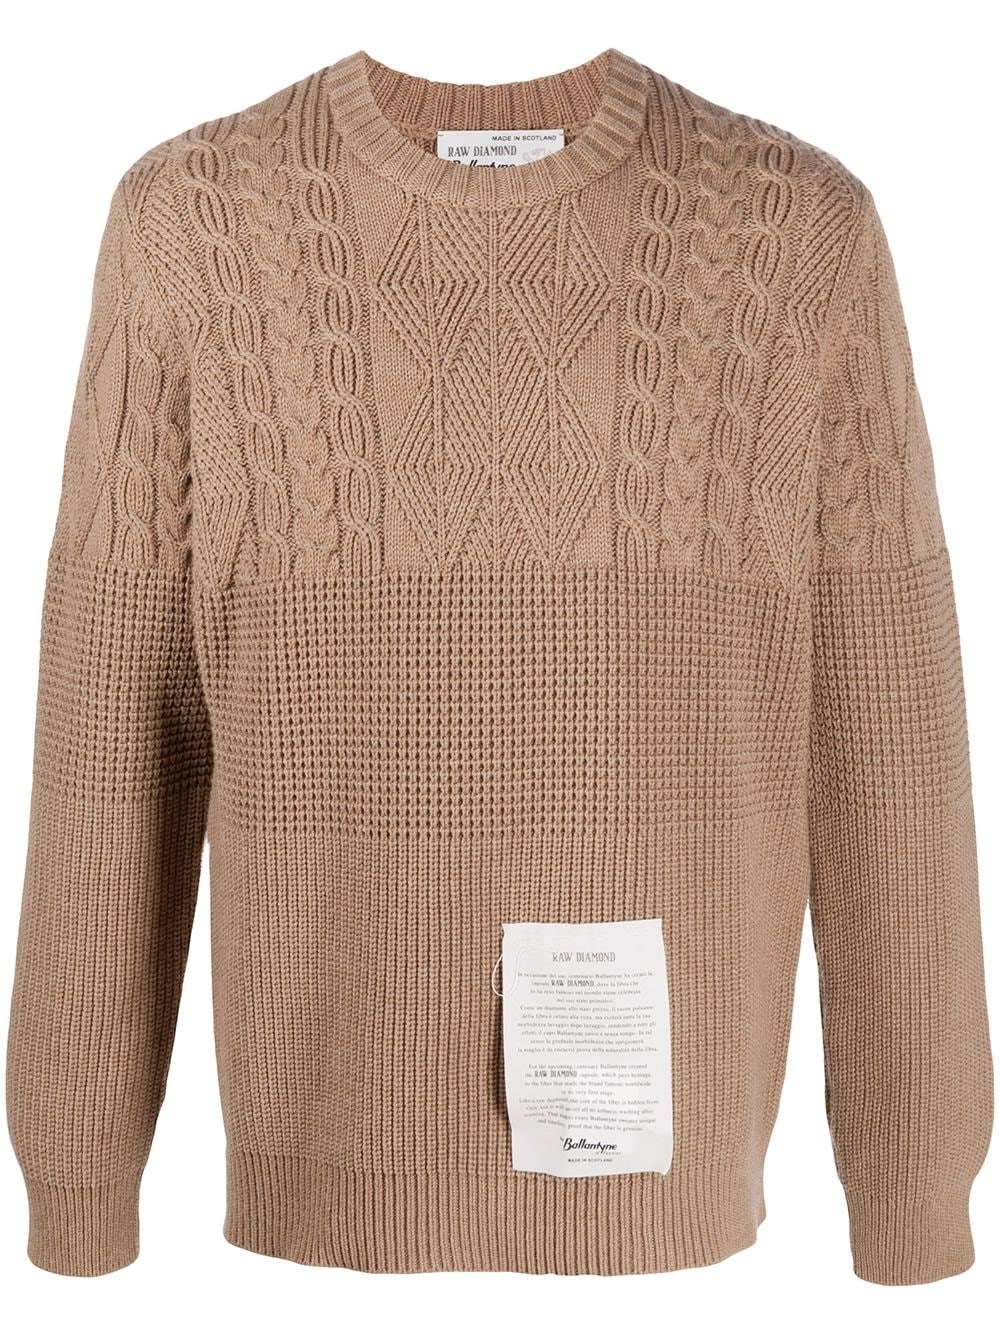 RAW DIAMOND BY BALLANTYNE Contrast-Knit Crewneck Jumper